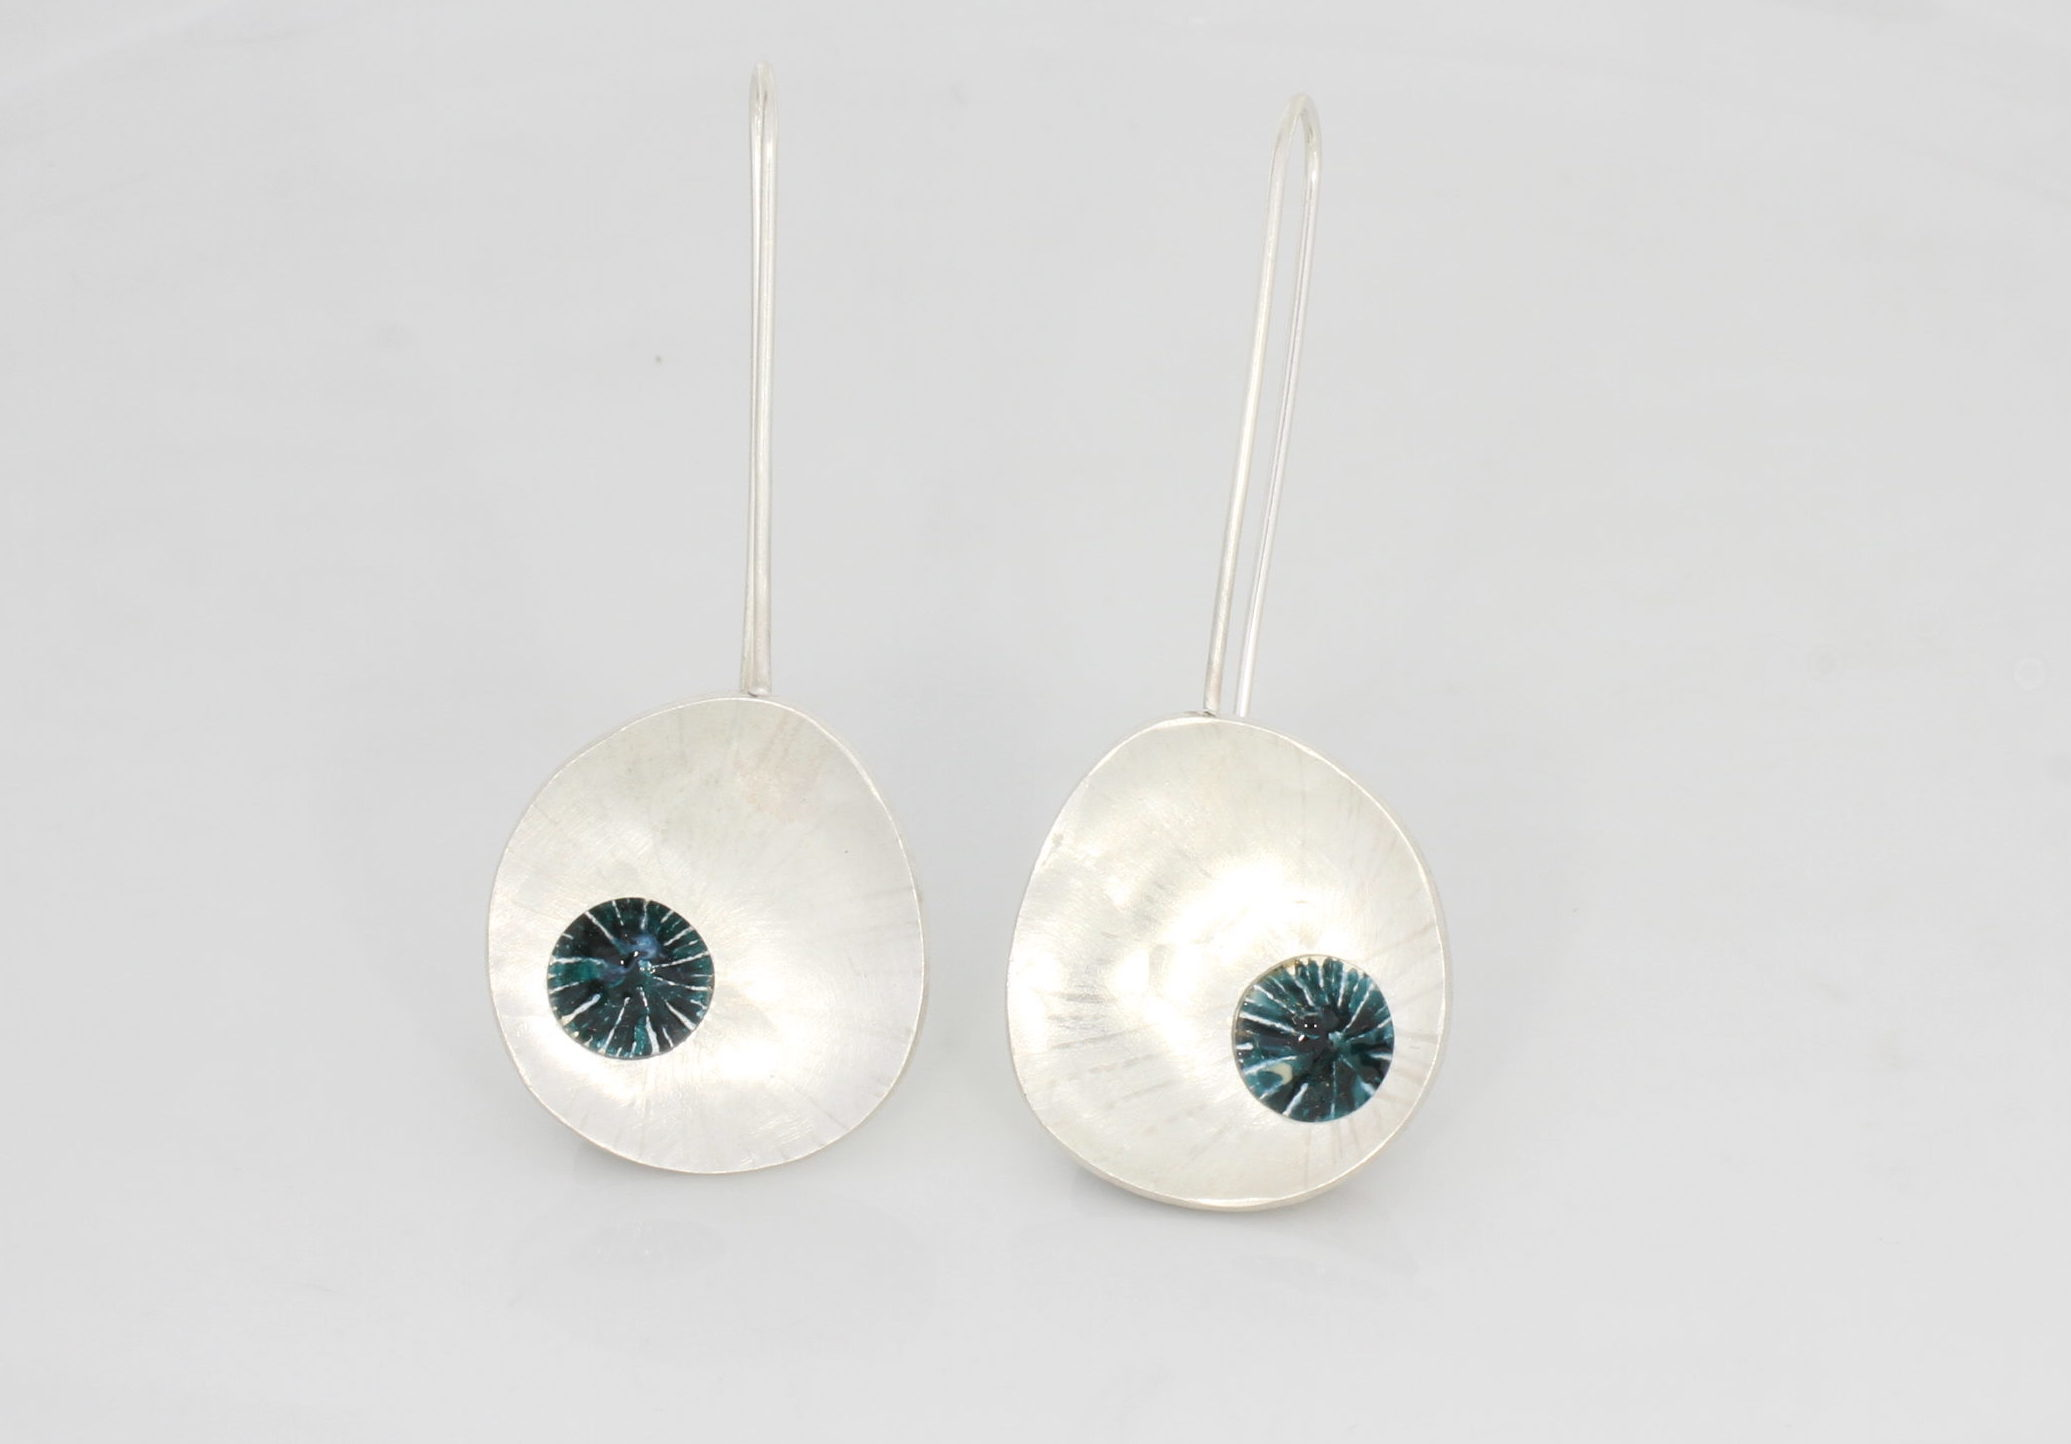 Payet silver enamel earrings